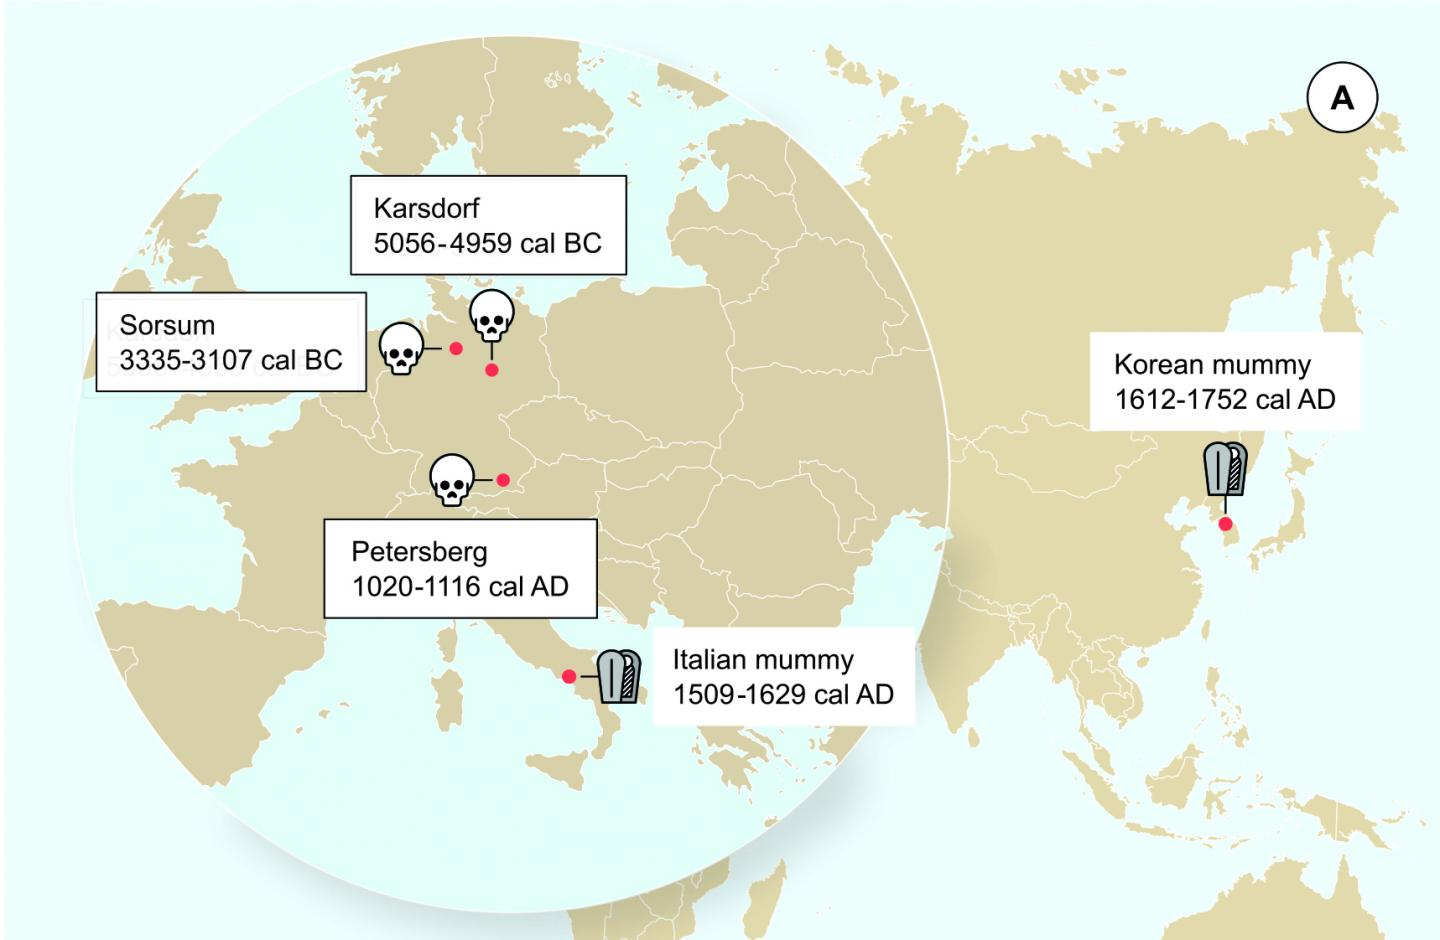 Geographic location of the samples from which ancient HBV genomes were recovered. Icons indicate the sample material (tooth or mummy). HBV genomes obtained in this study are indicated by black frames. [Krause-Kyora et al., eLife 2018]